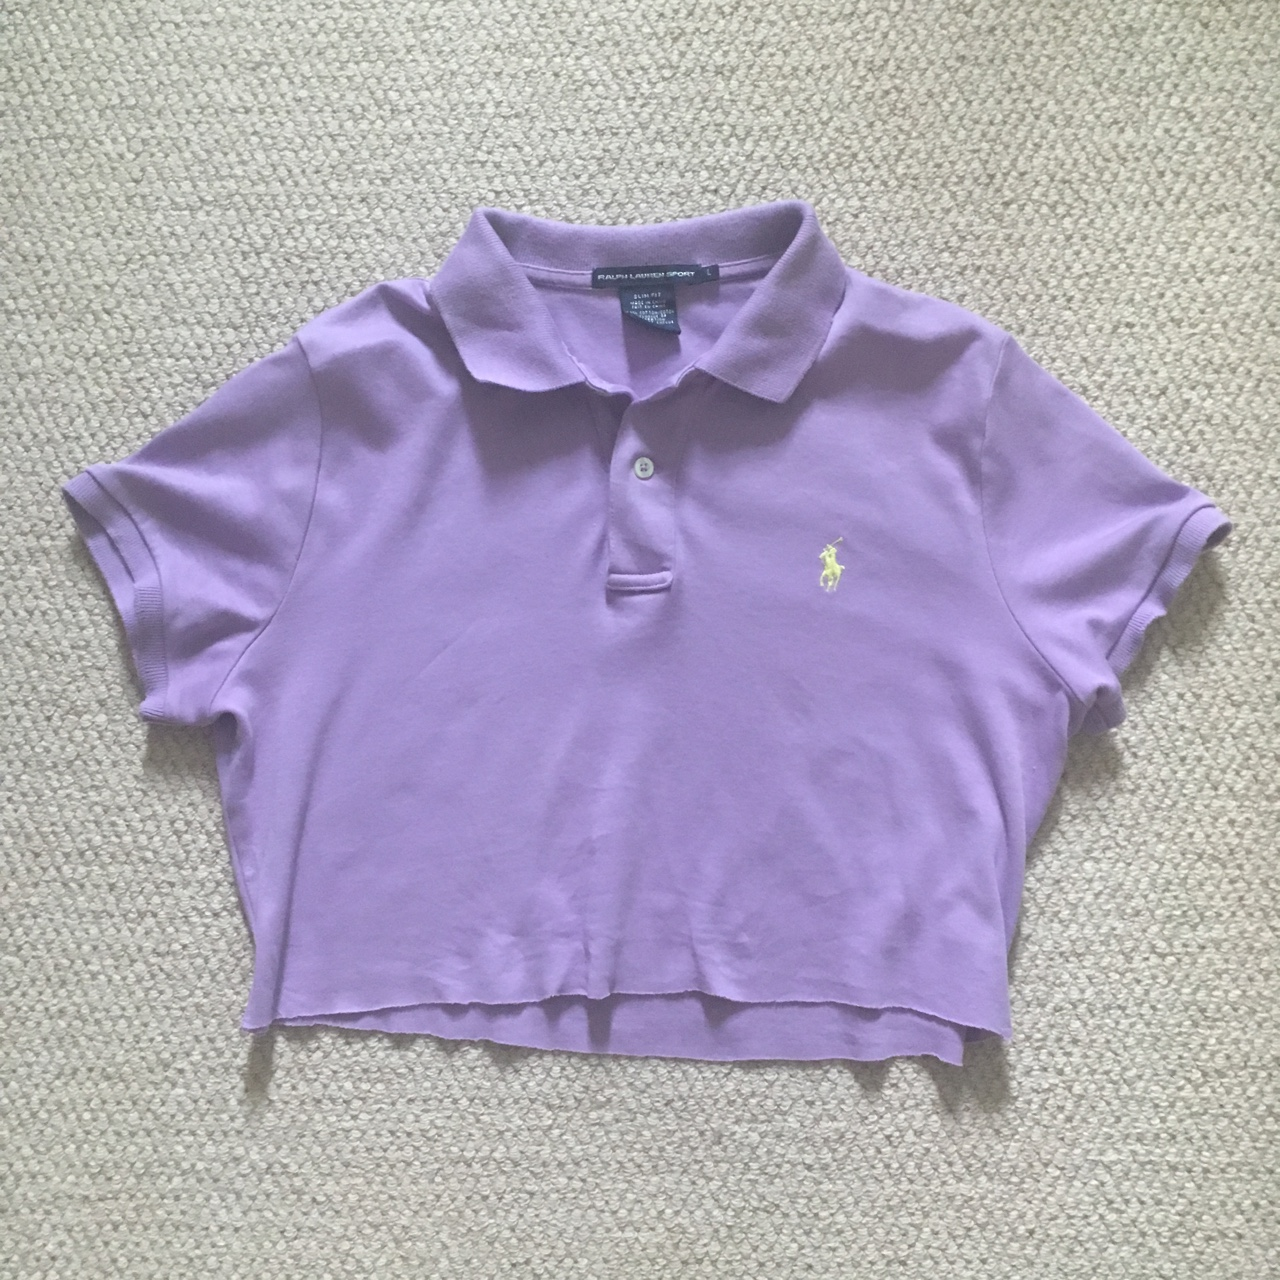 Really Cute Cropped Lilac Ralph Lauren Polo Top by Depop